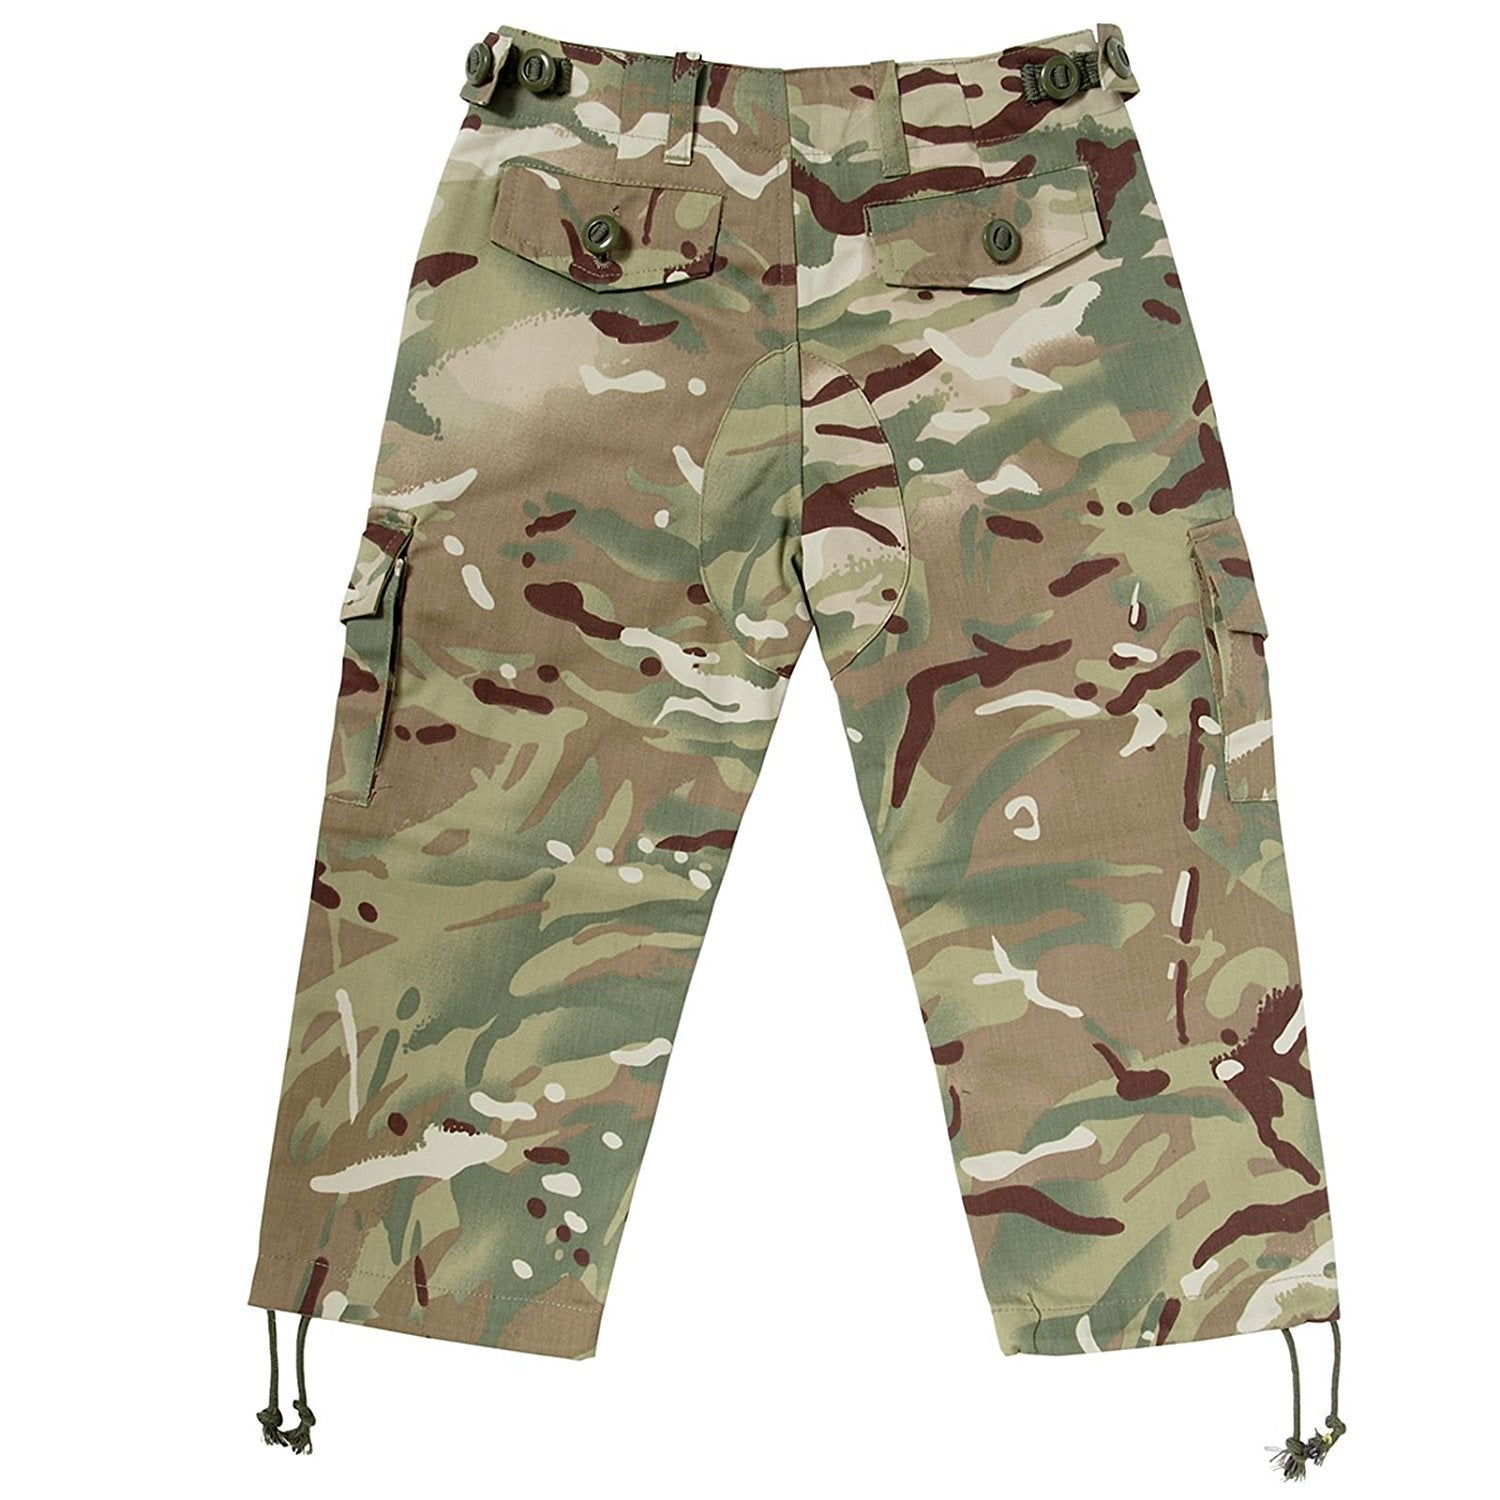 KAS Kids Quality Multi Terrain Camo Army Combat Trousers - 13 yrs - Bear Essentials Clothing Company